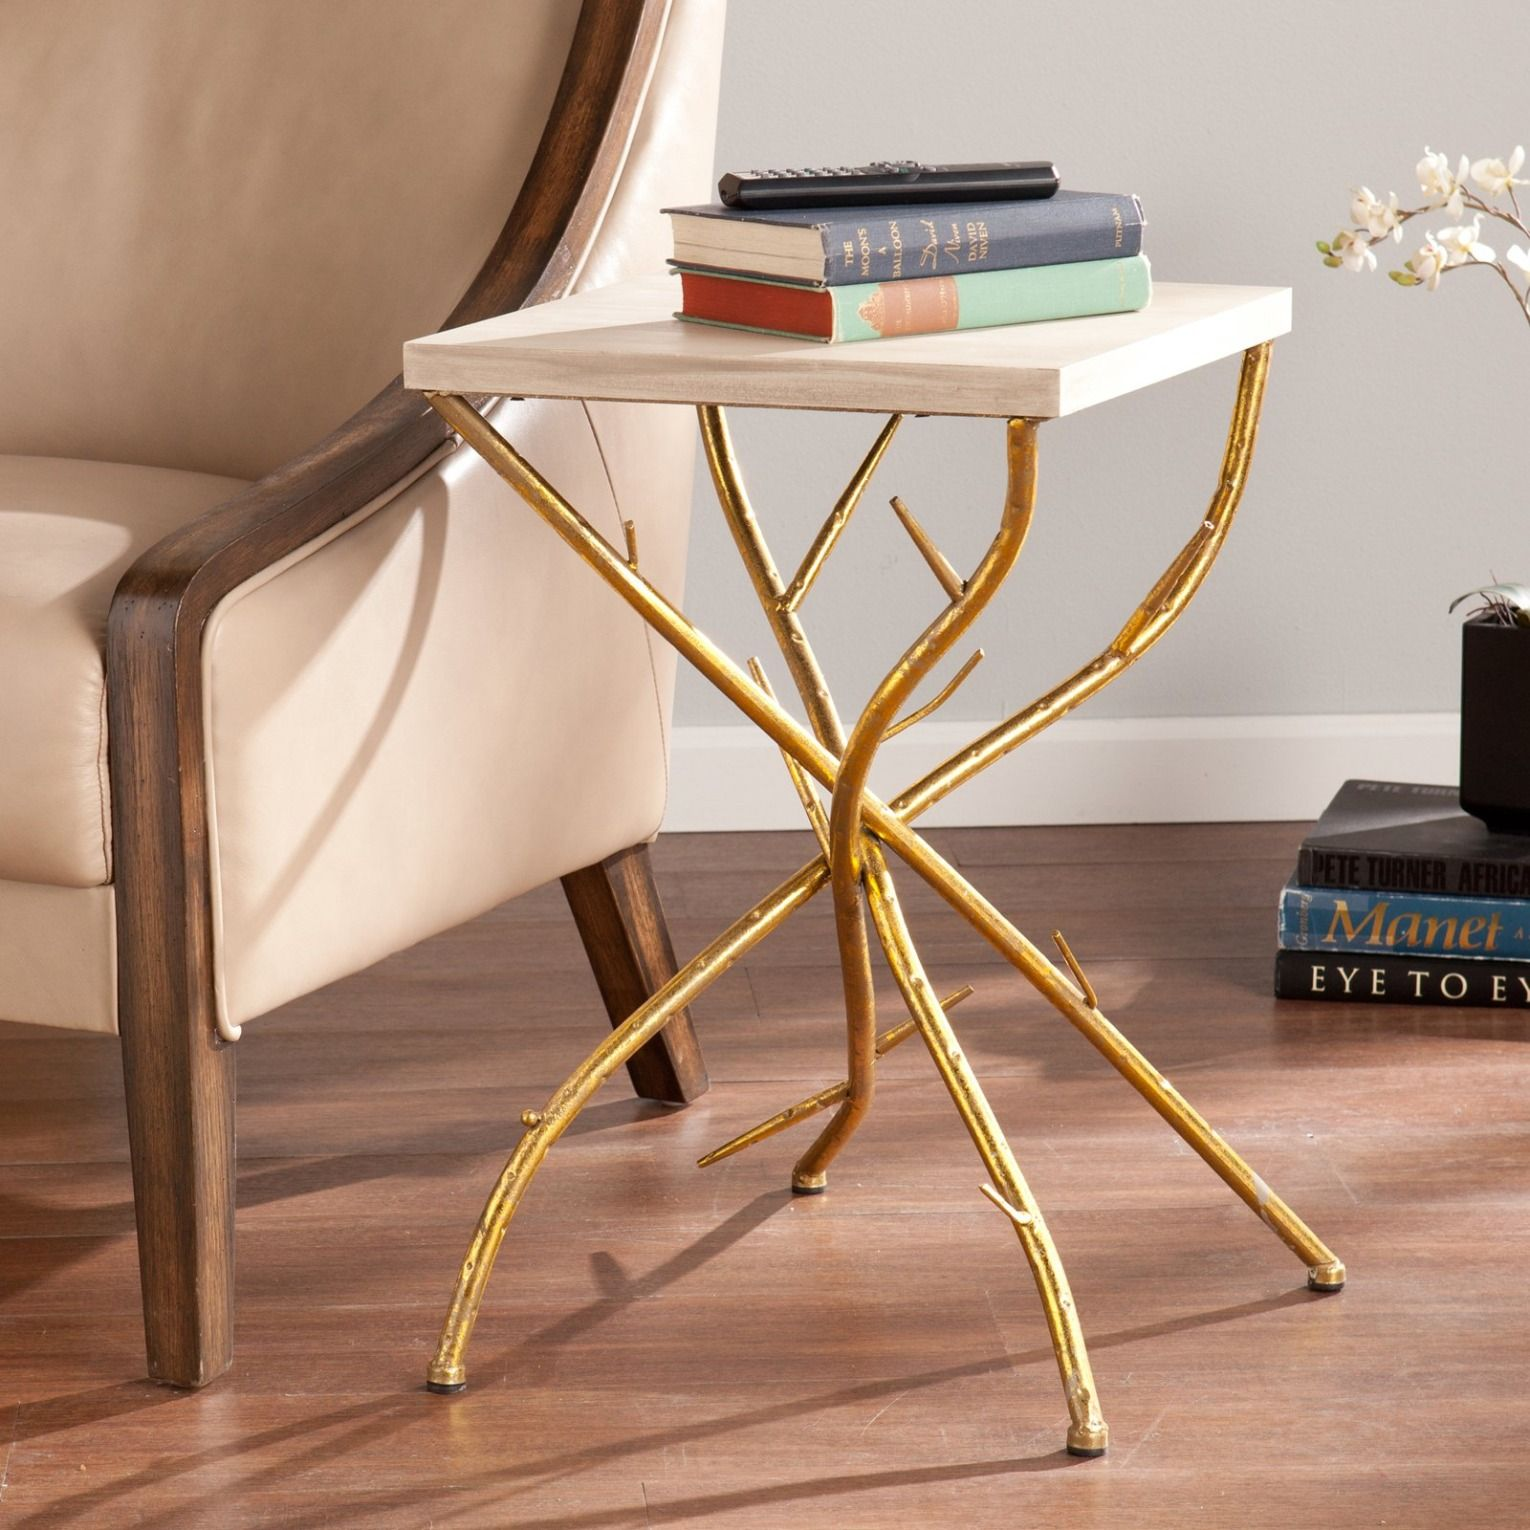 This gold end table adds glamour to any setting